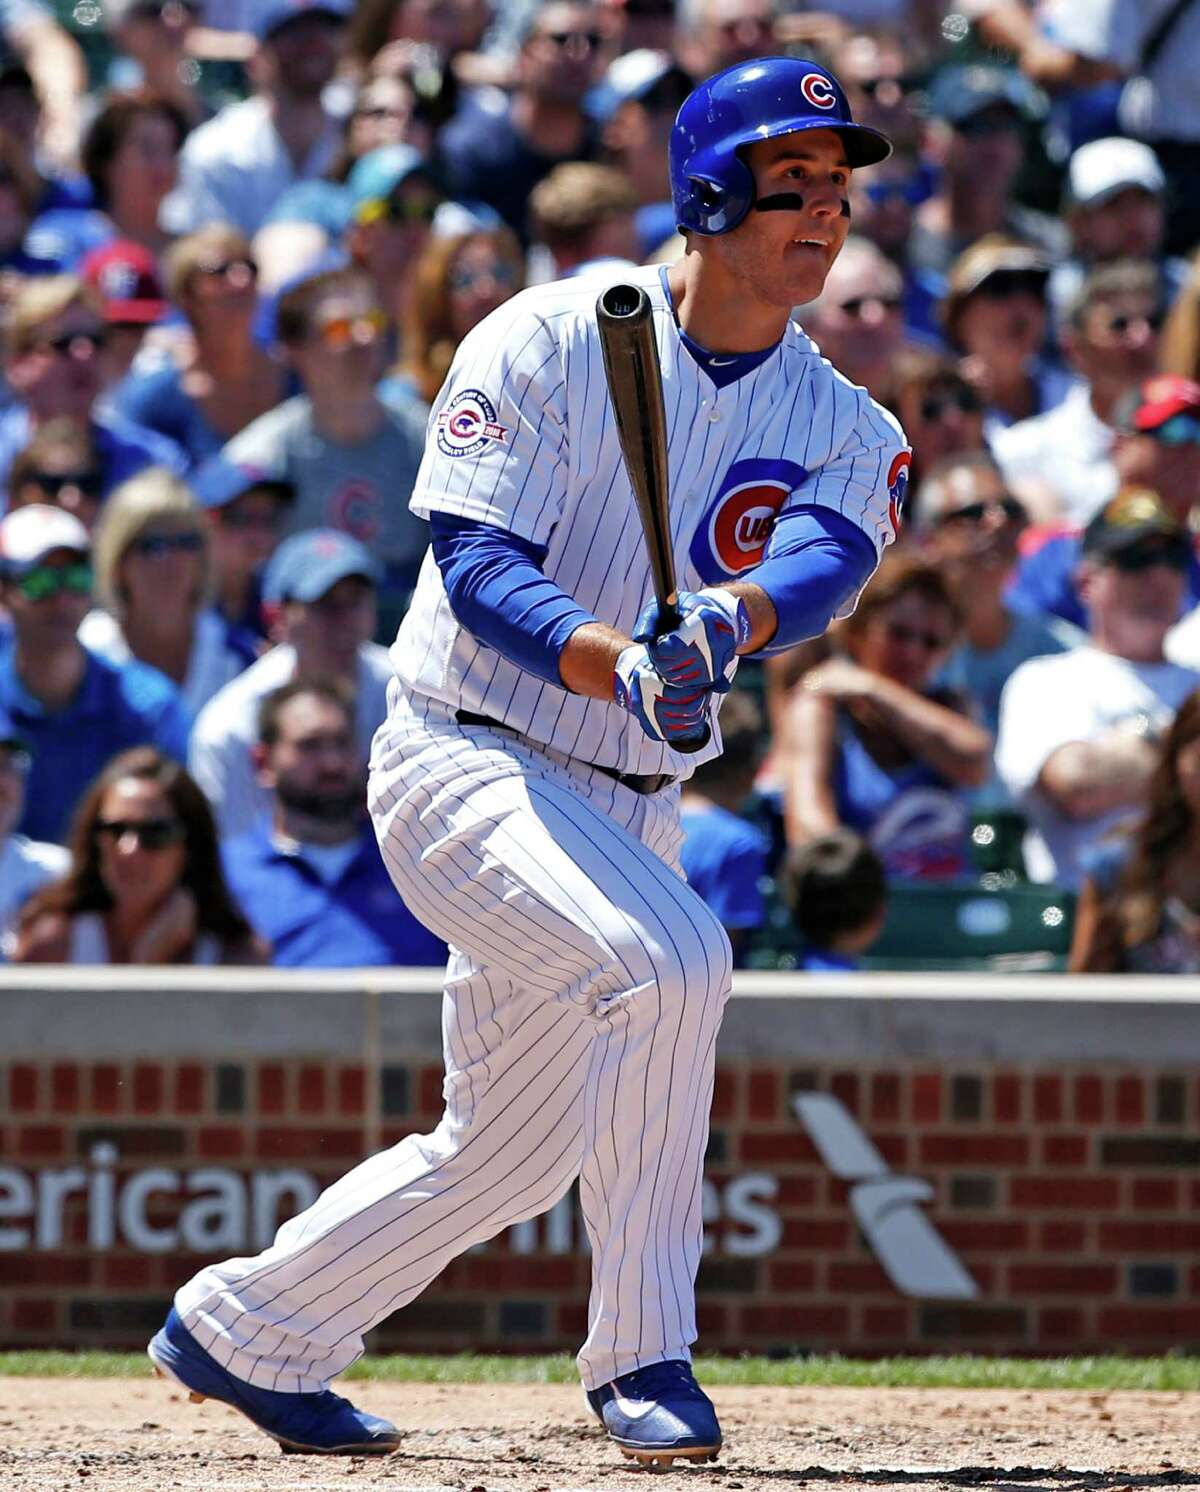 Chicago Cubs' Anthony Rizzo watches after hitting a two-run double during the third inning of an interleague baseball game against the Texas Rangers in Chicago, Saturday, July 16, 2016. (AP Photo/Nam Y. Huh) ORG XMIT: CXC104